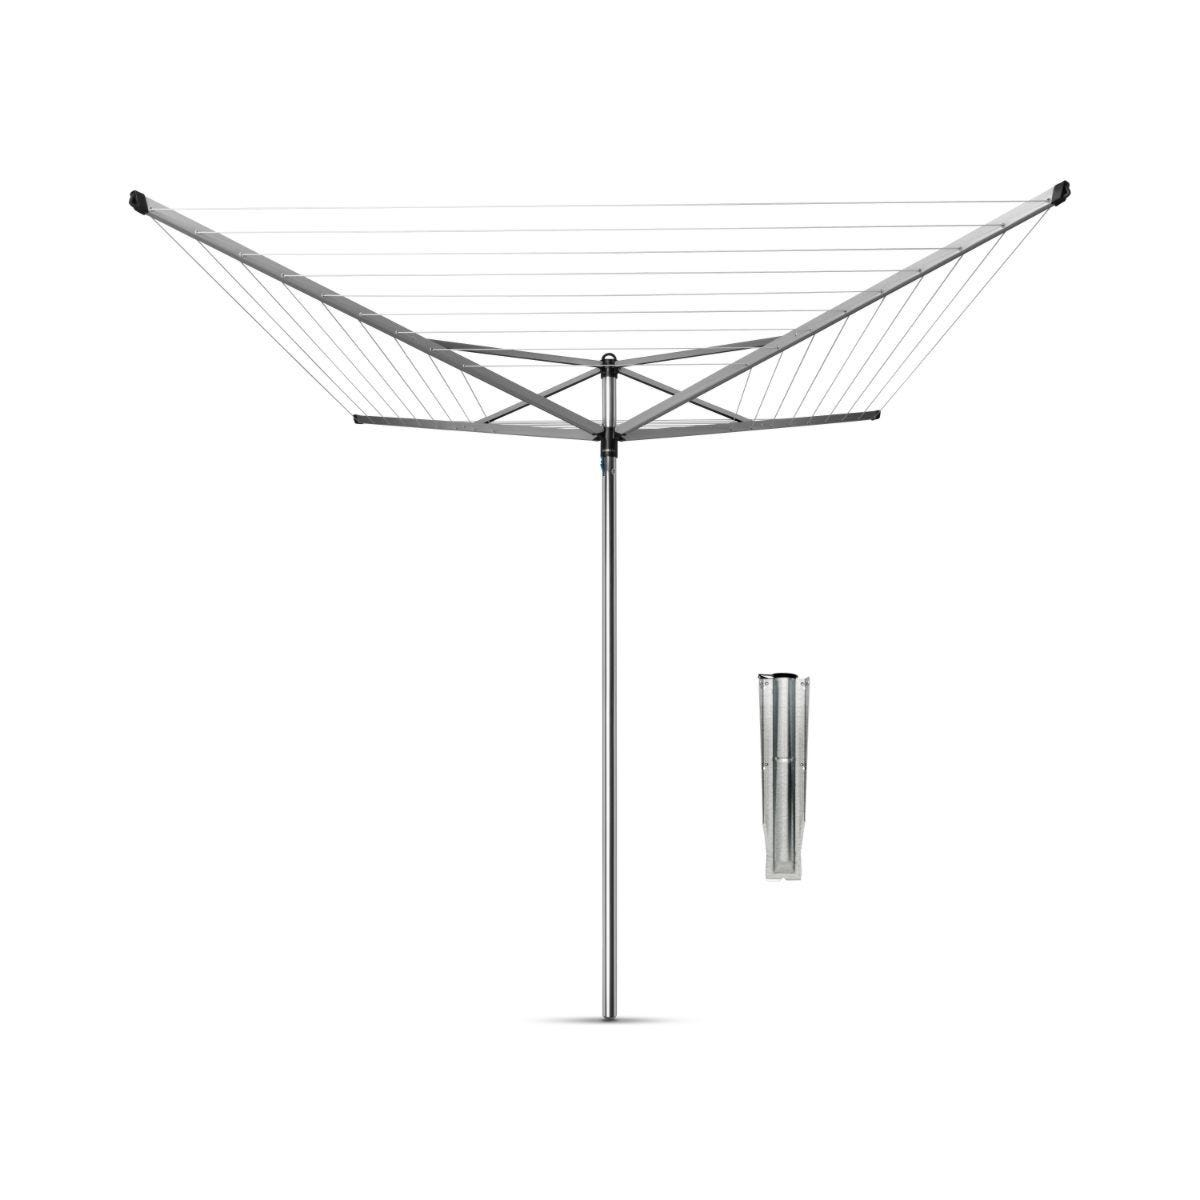 Brabantia Rotary Dryer Topspinner 60m With Ground Spike - Metallic Grey